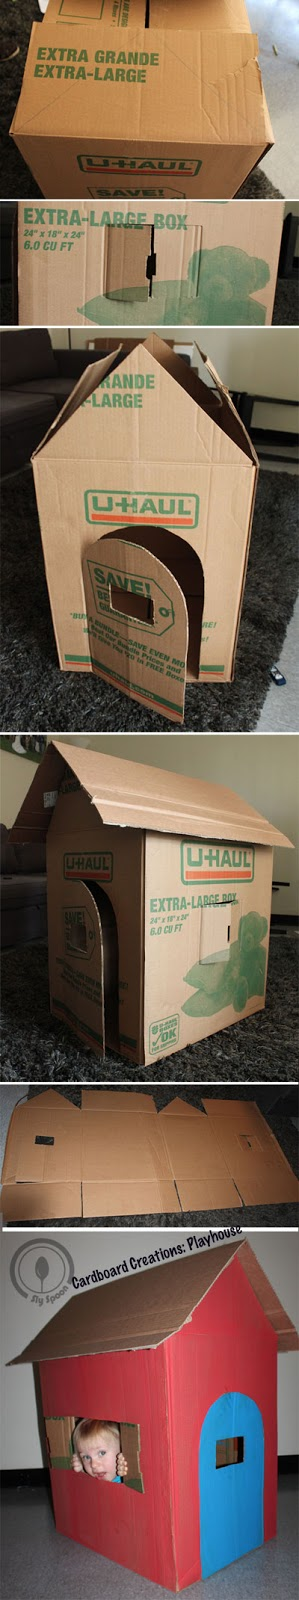 Cardboard Creations - Easy DIY Cardboard Playhouse Doghouse